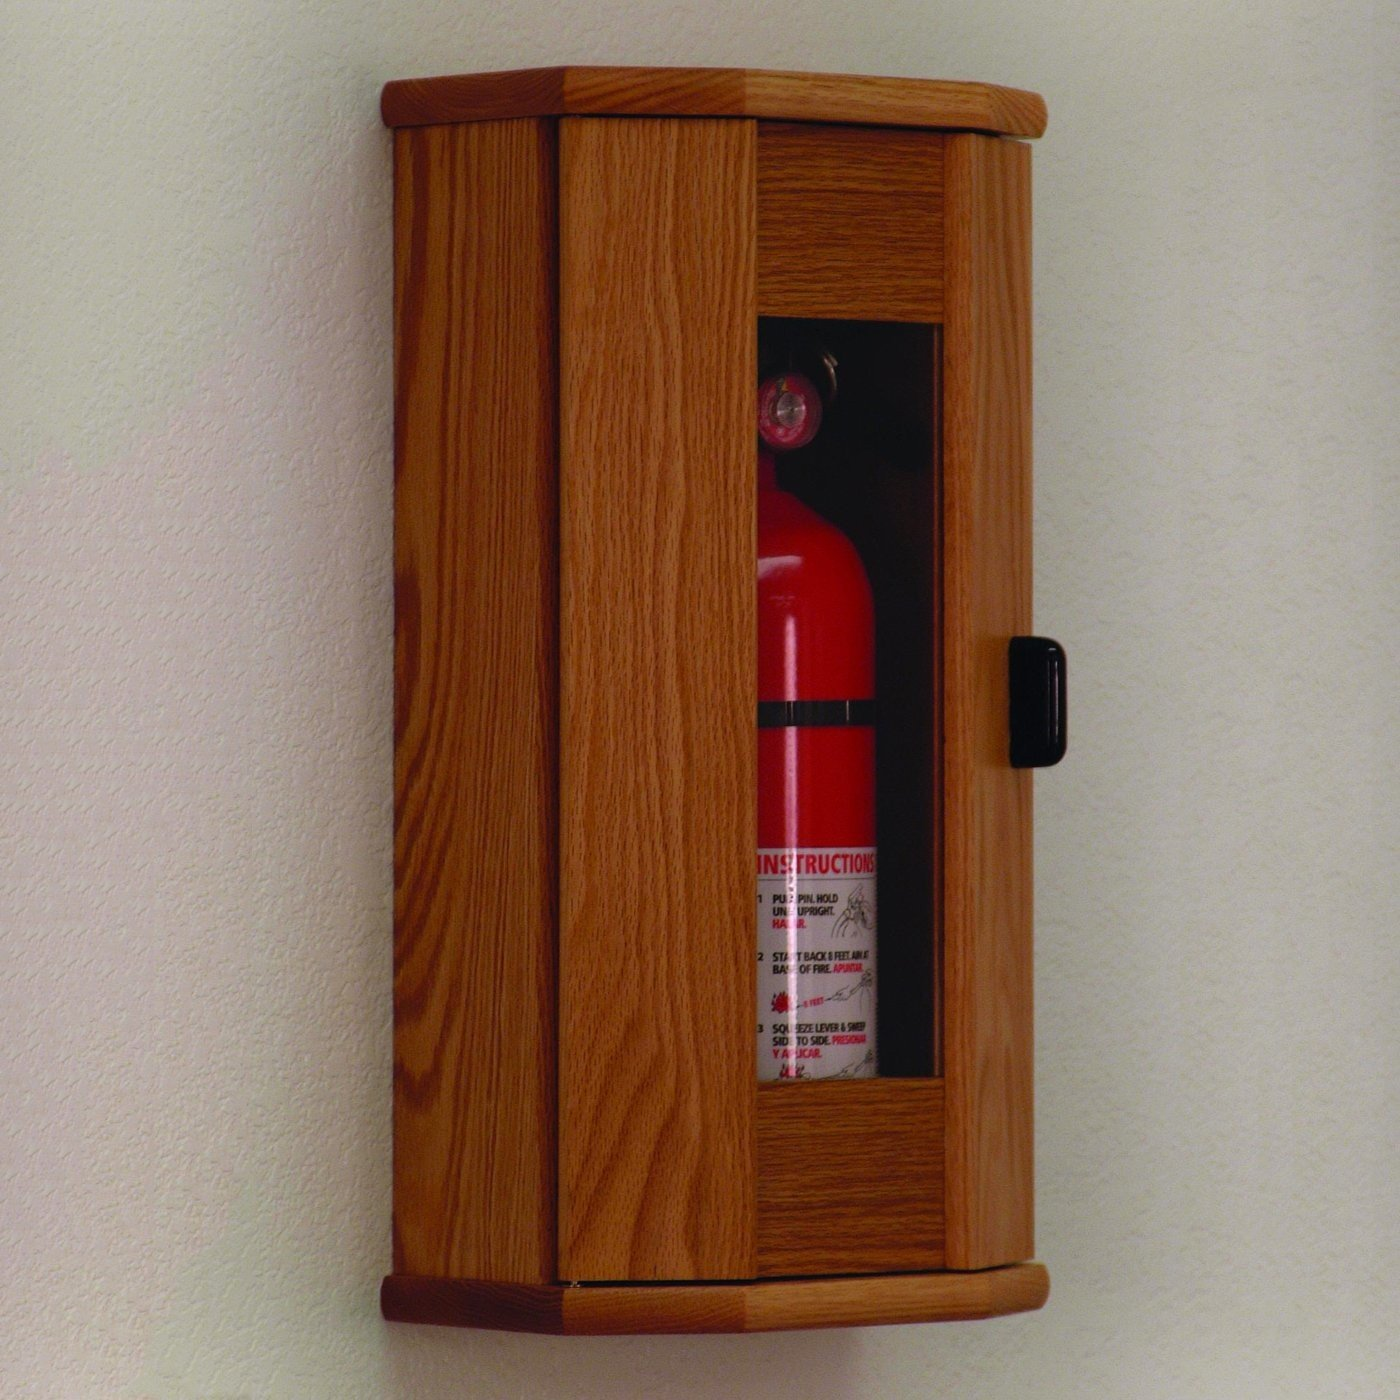 Wooden Mallet FEC21 10 Lb. Fire extinguisher Oak Cabinet with Acrylic Front Panel